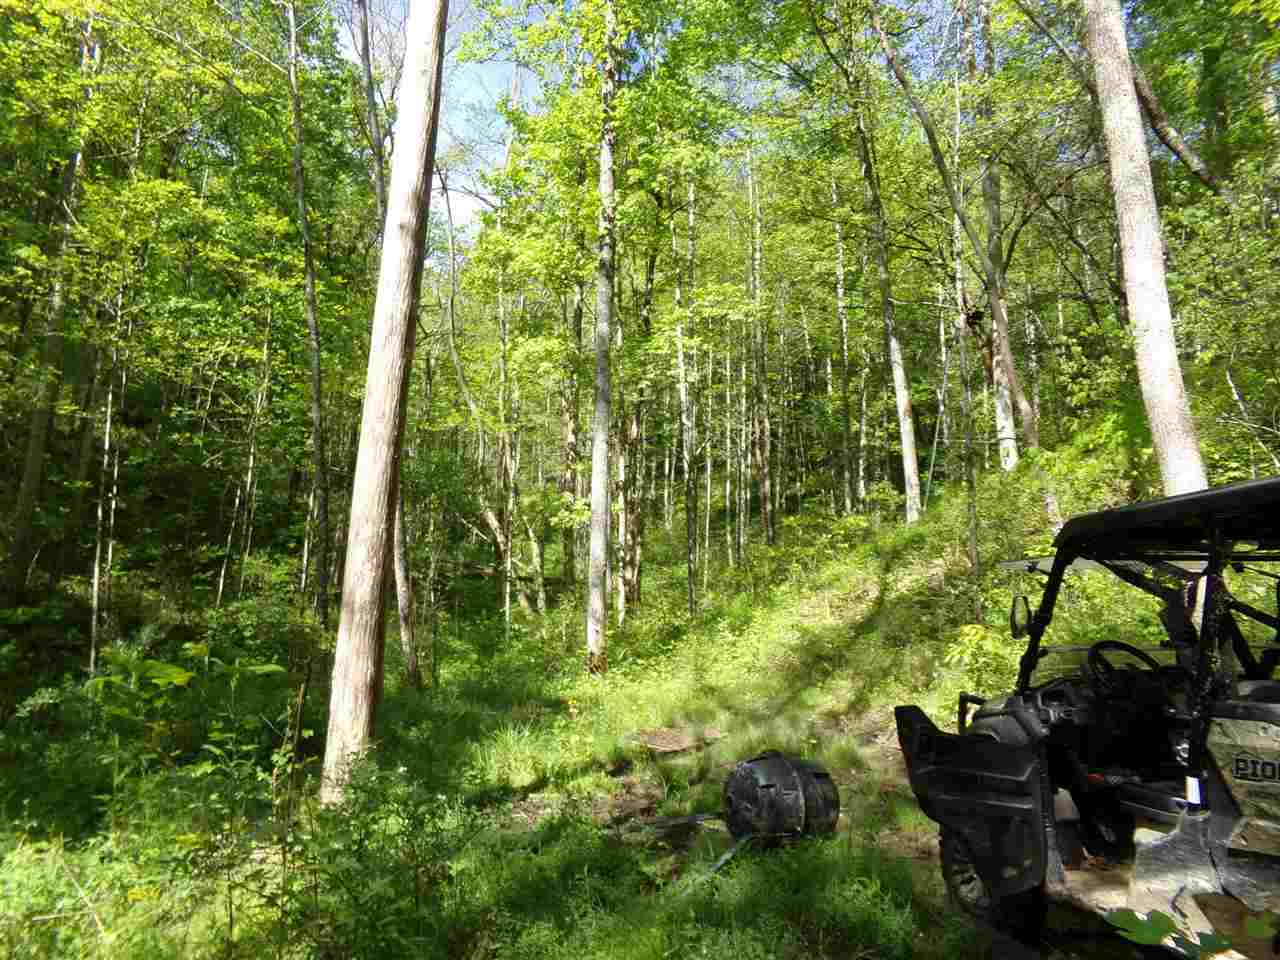 Great opportunity to own a nice size hunting property for the price of building lot. 45.71 acres of wooded land by boundary deed. Great for hunting, atv riding, camping etc.